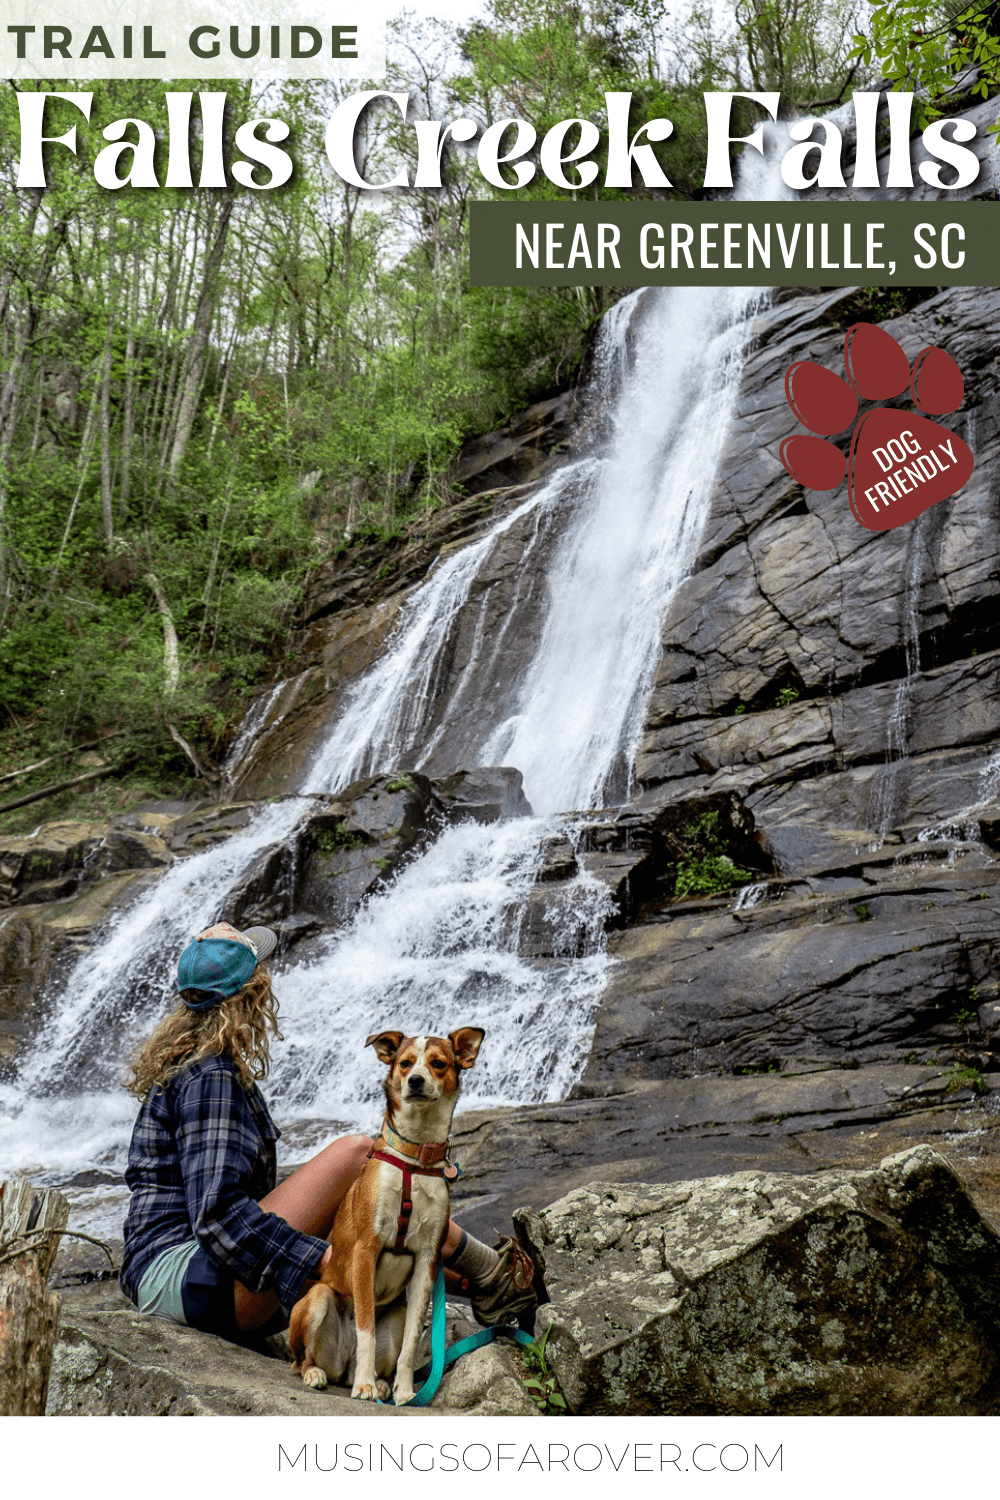 Want to visit one of the best waterfalls near Greenville, SC? Falls Creek Waterfall in the Mountain Bridge Wilderness Area makes a perfect day trip! At 125ft it's one of the most impressive waterfalls in the region. And this hike is dog friendly!